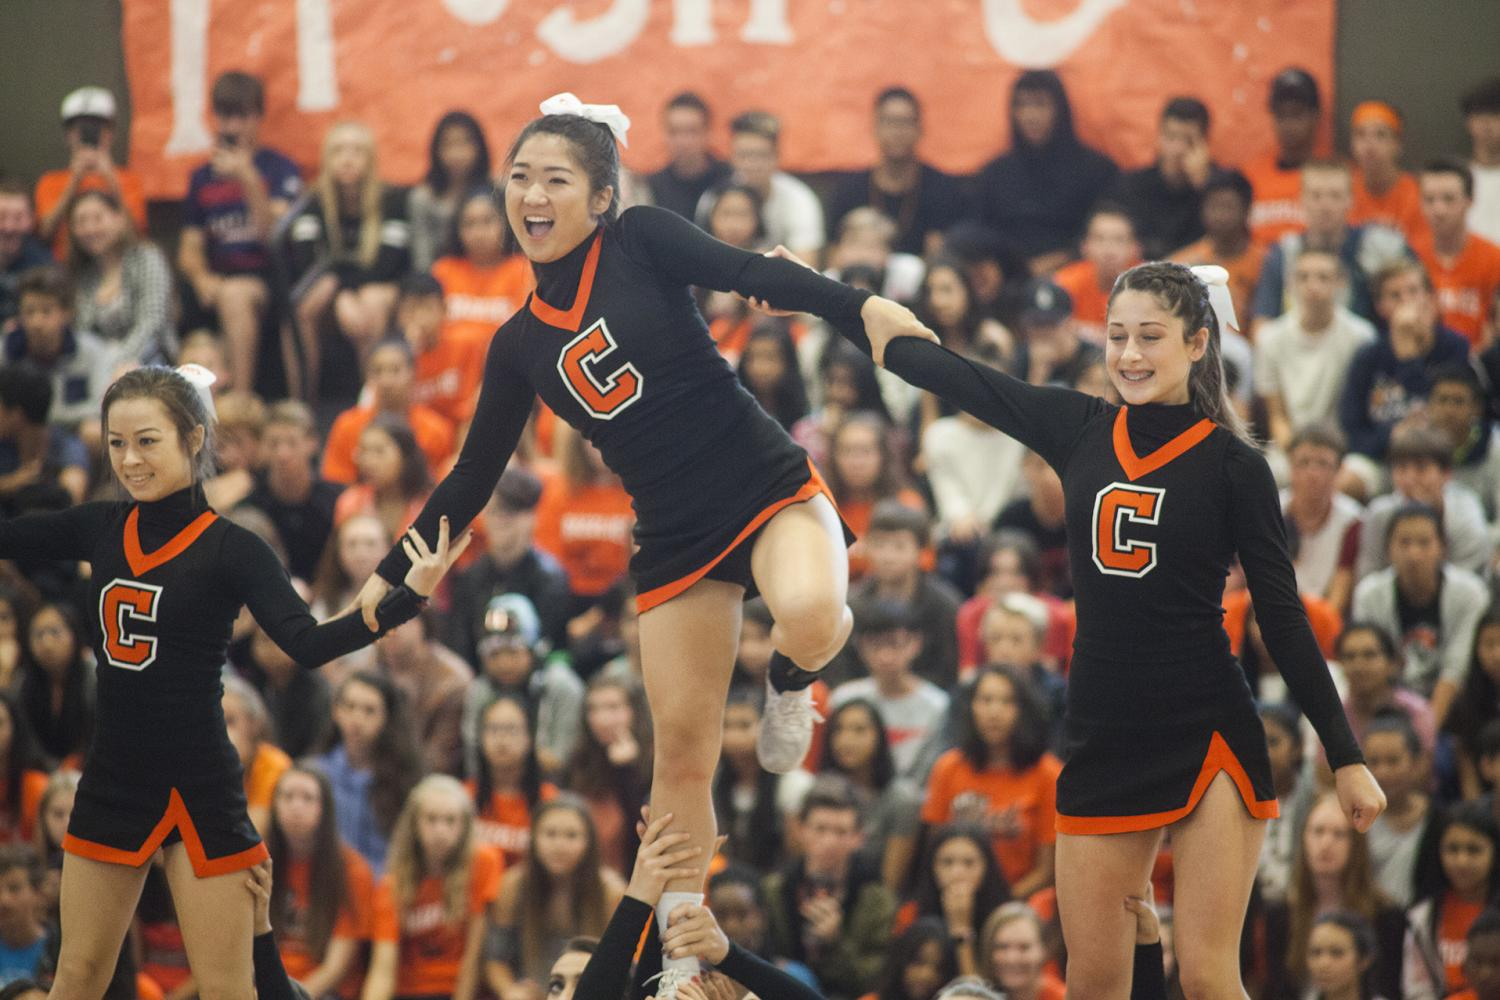 From left to right, sideline cheerleaders Samantha Fredrickson,  Isabelle Yoo, and Taylor Craig perform at the first rally.